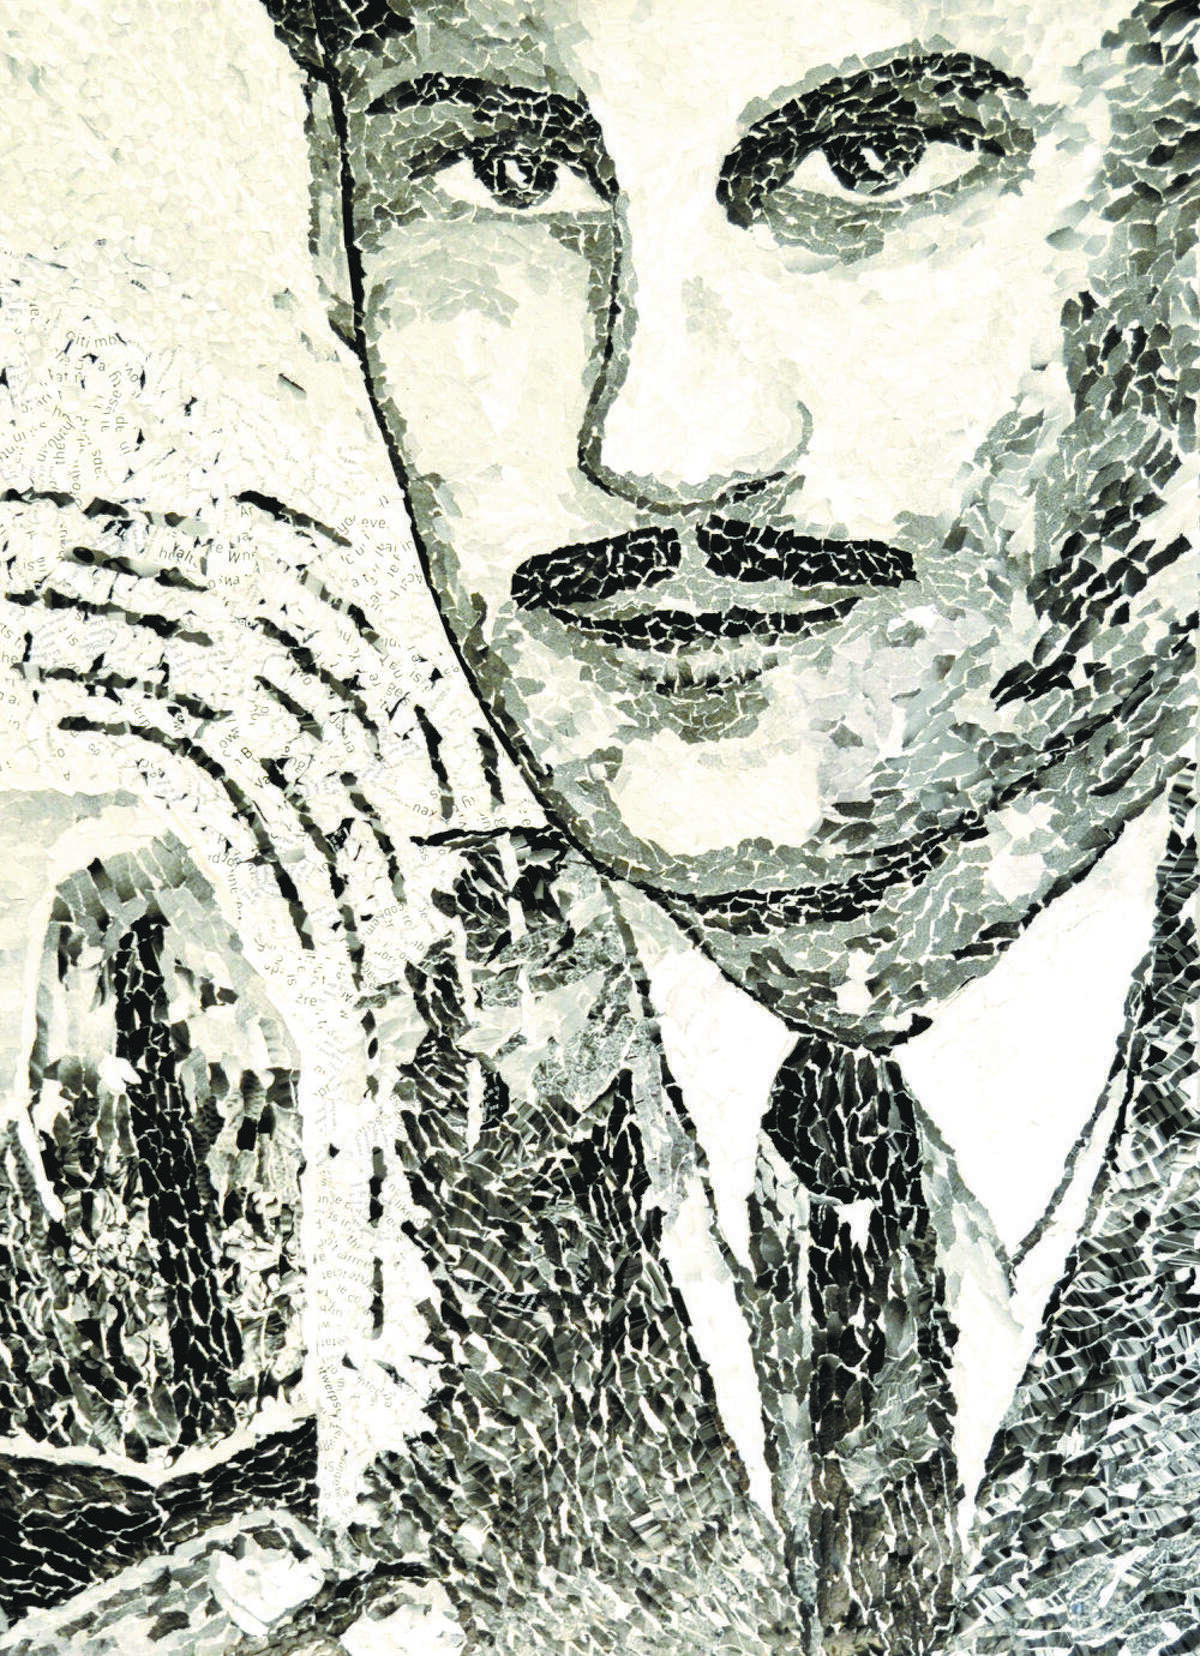 Wheeler made a collage portrait of her father from bits of torn paper.